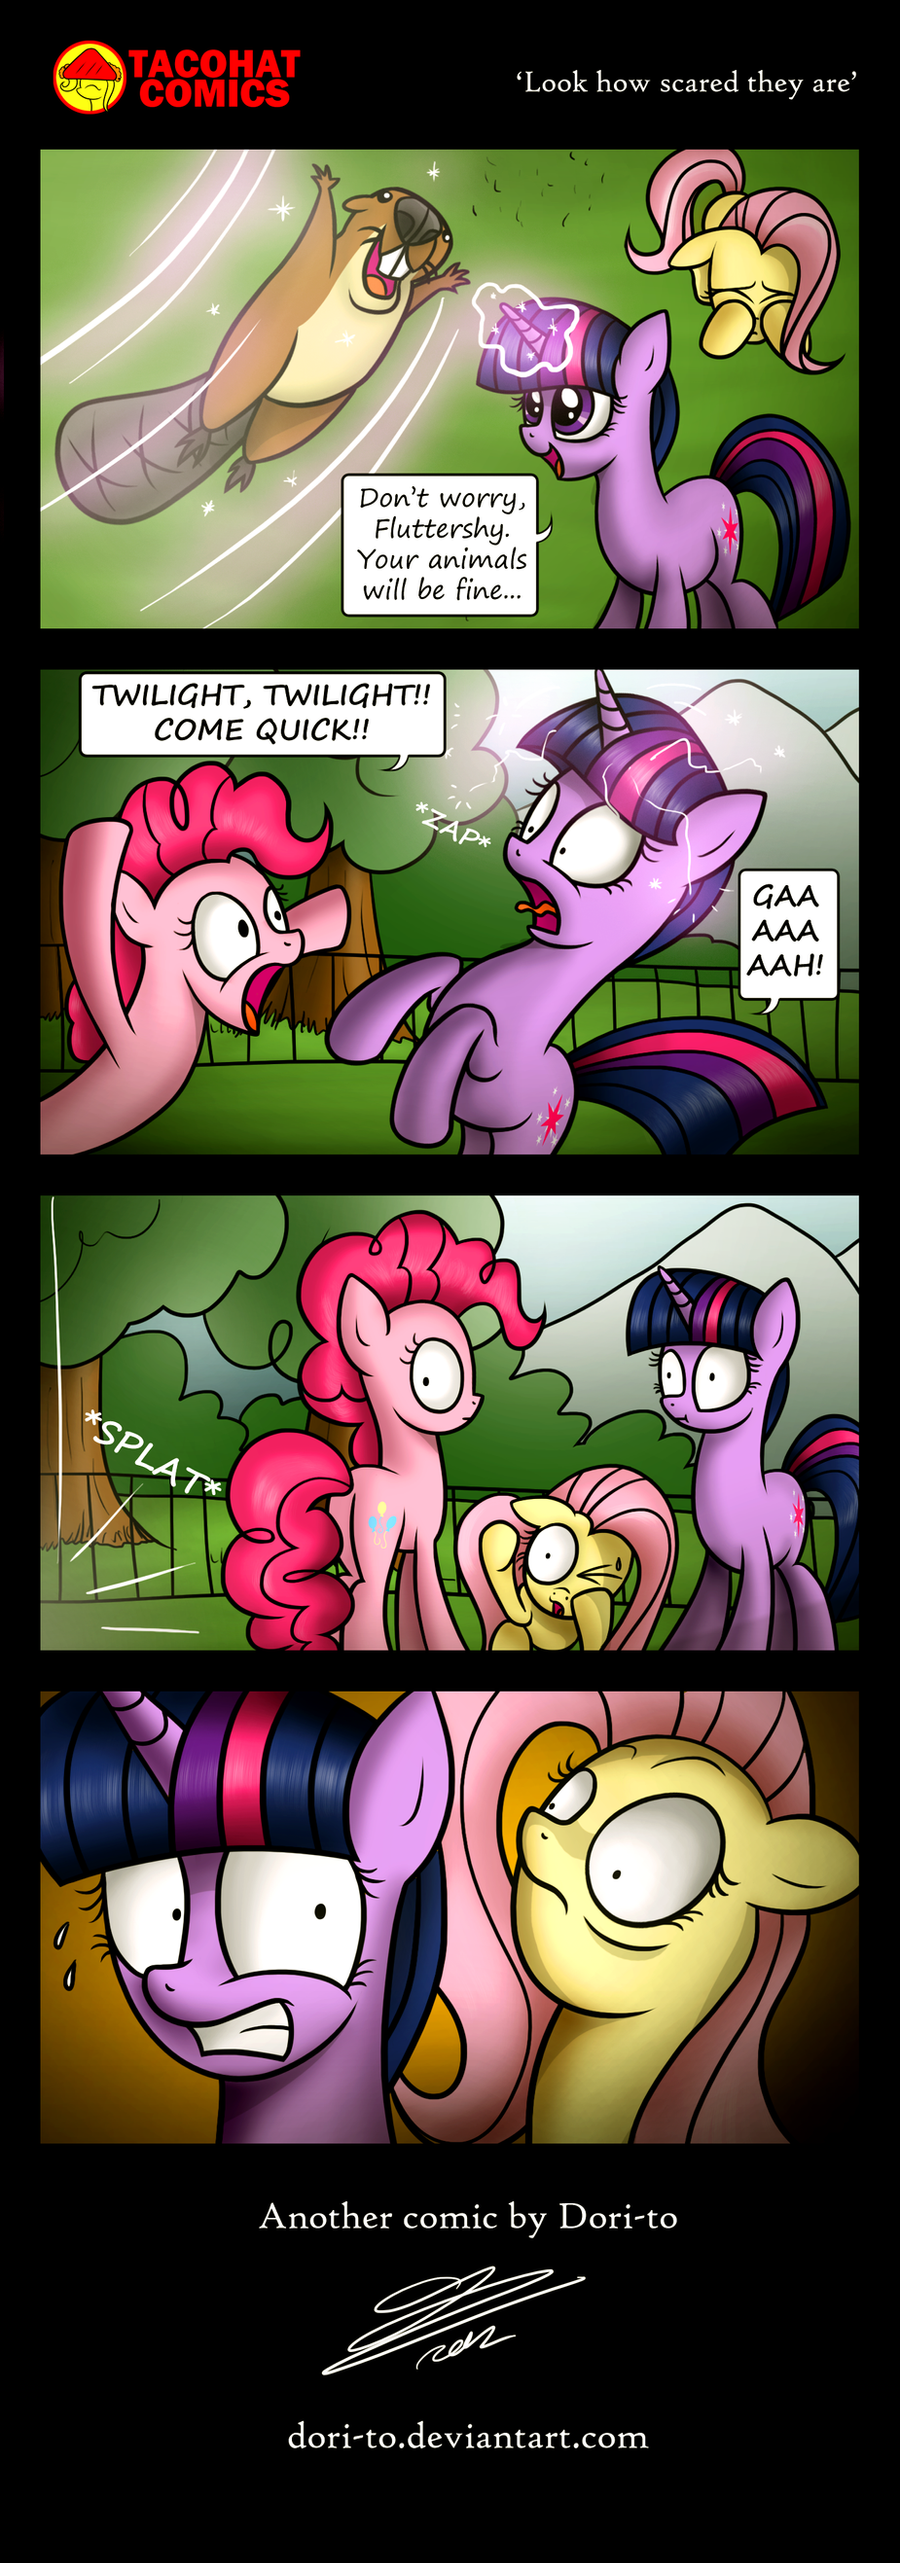 Look how scared they are by Dori-to